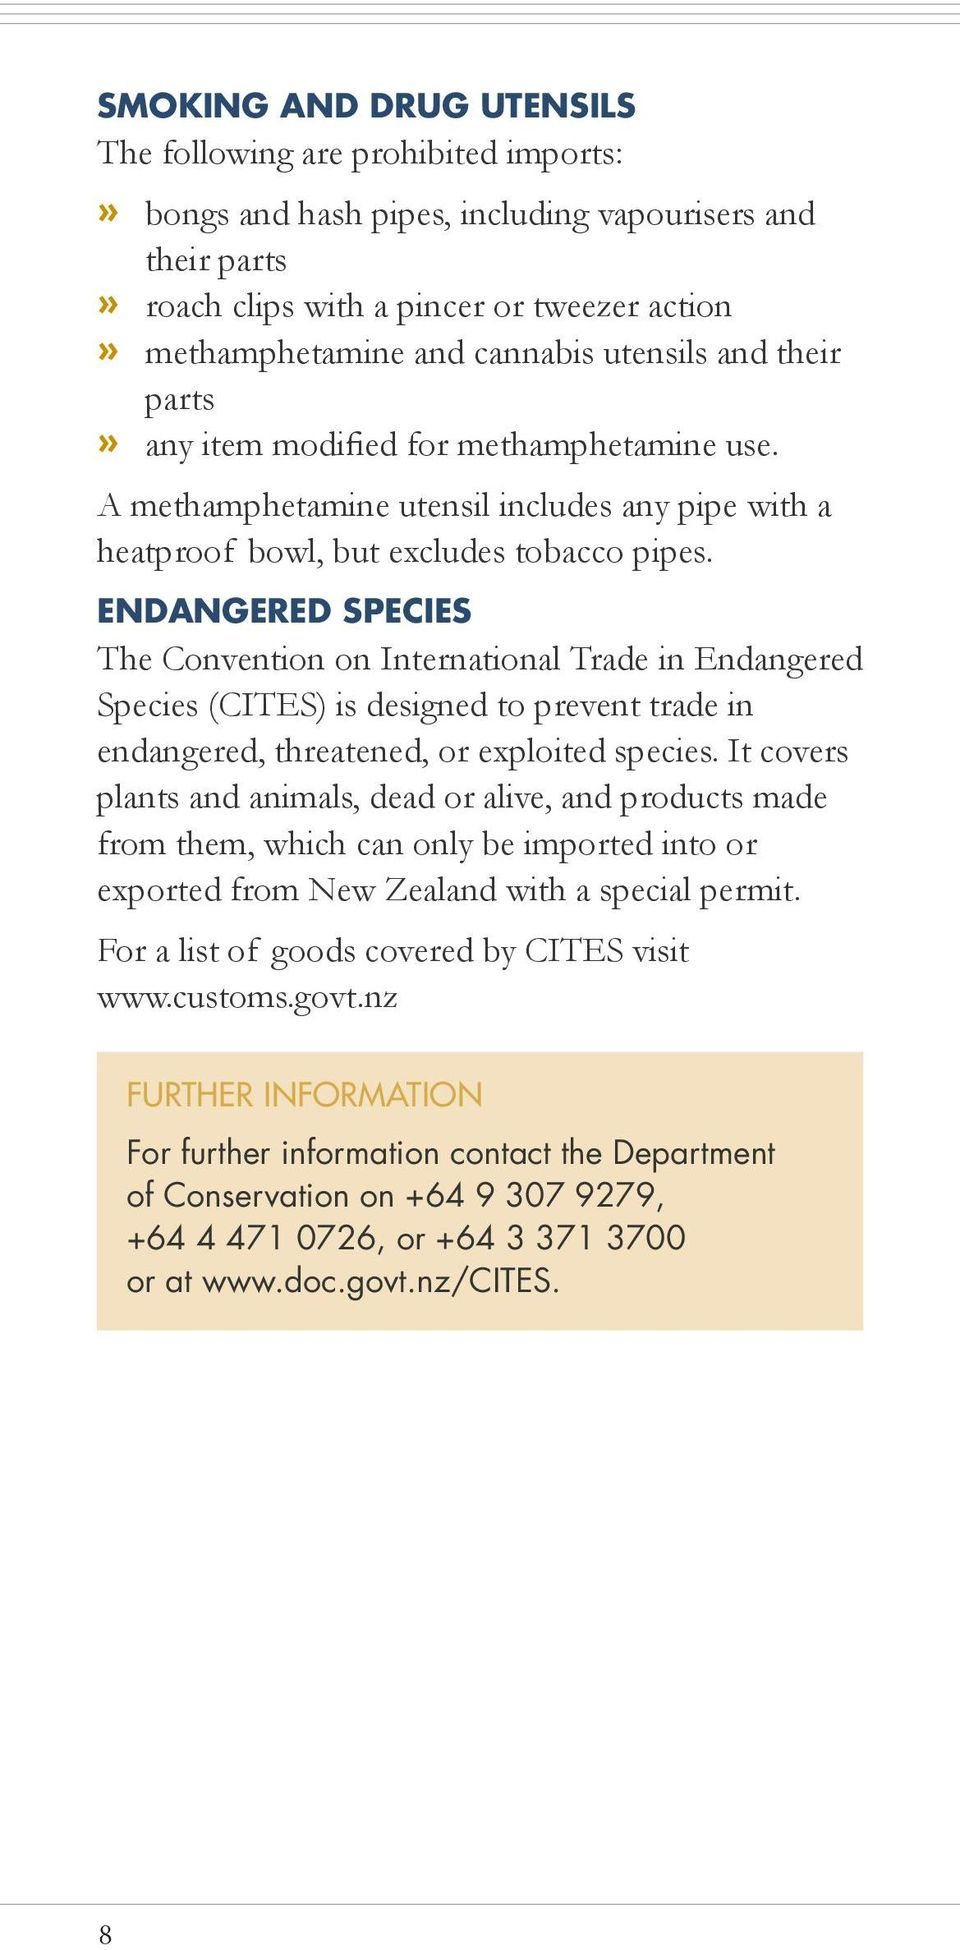 ENDANGERED SPECIES The Convention on International Trade in Endangered Species (CITES) is designed to prevent trade in endangered, threatened, or exploited species.